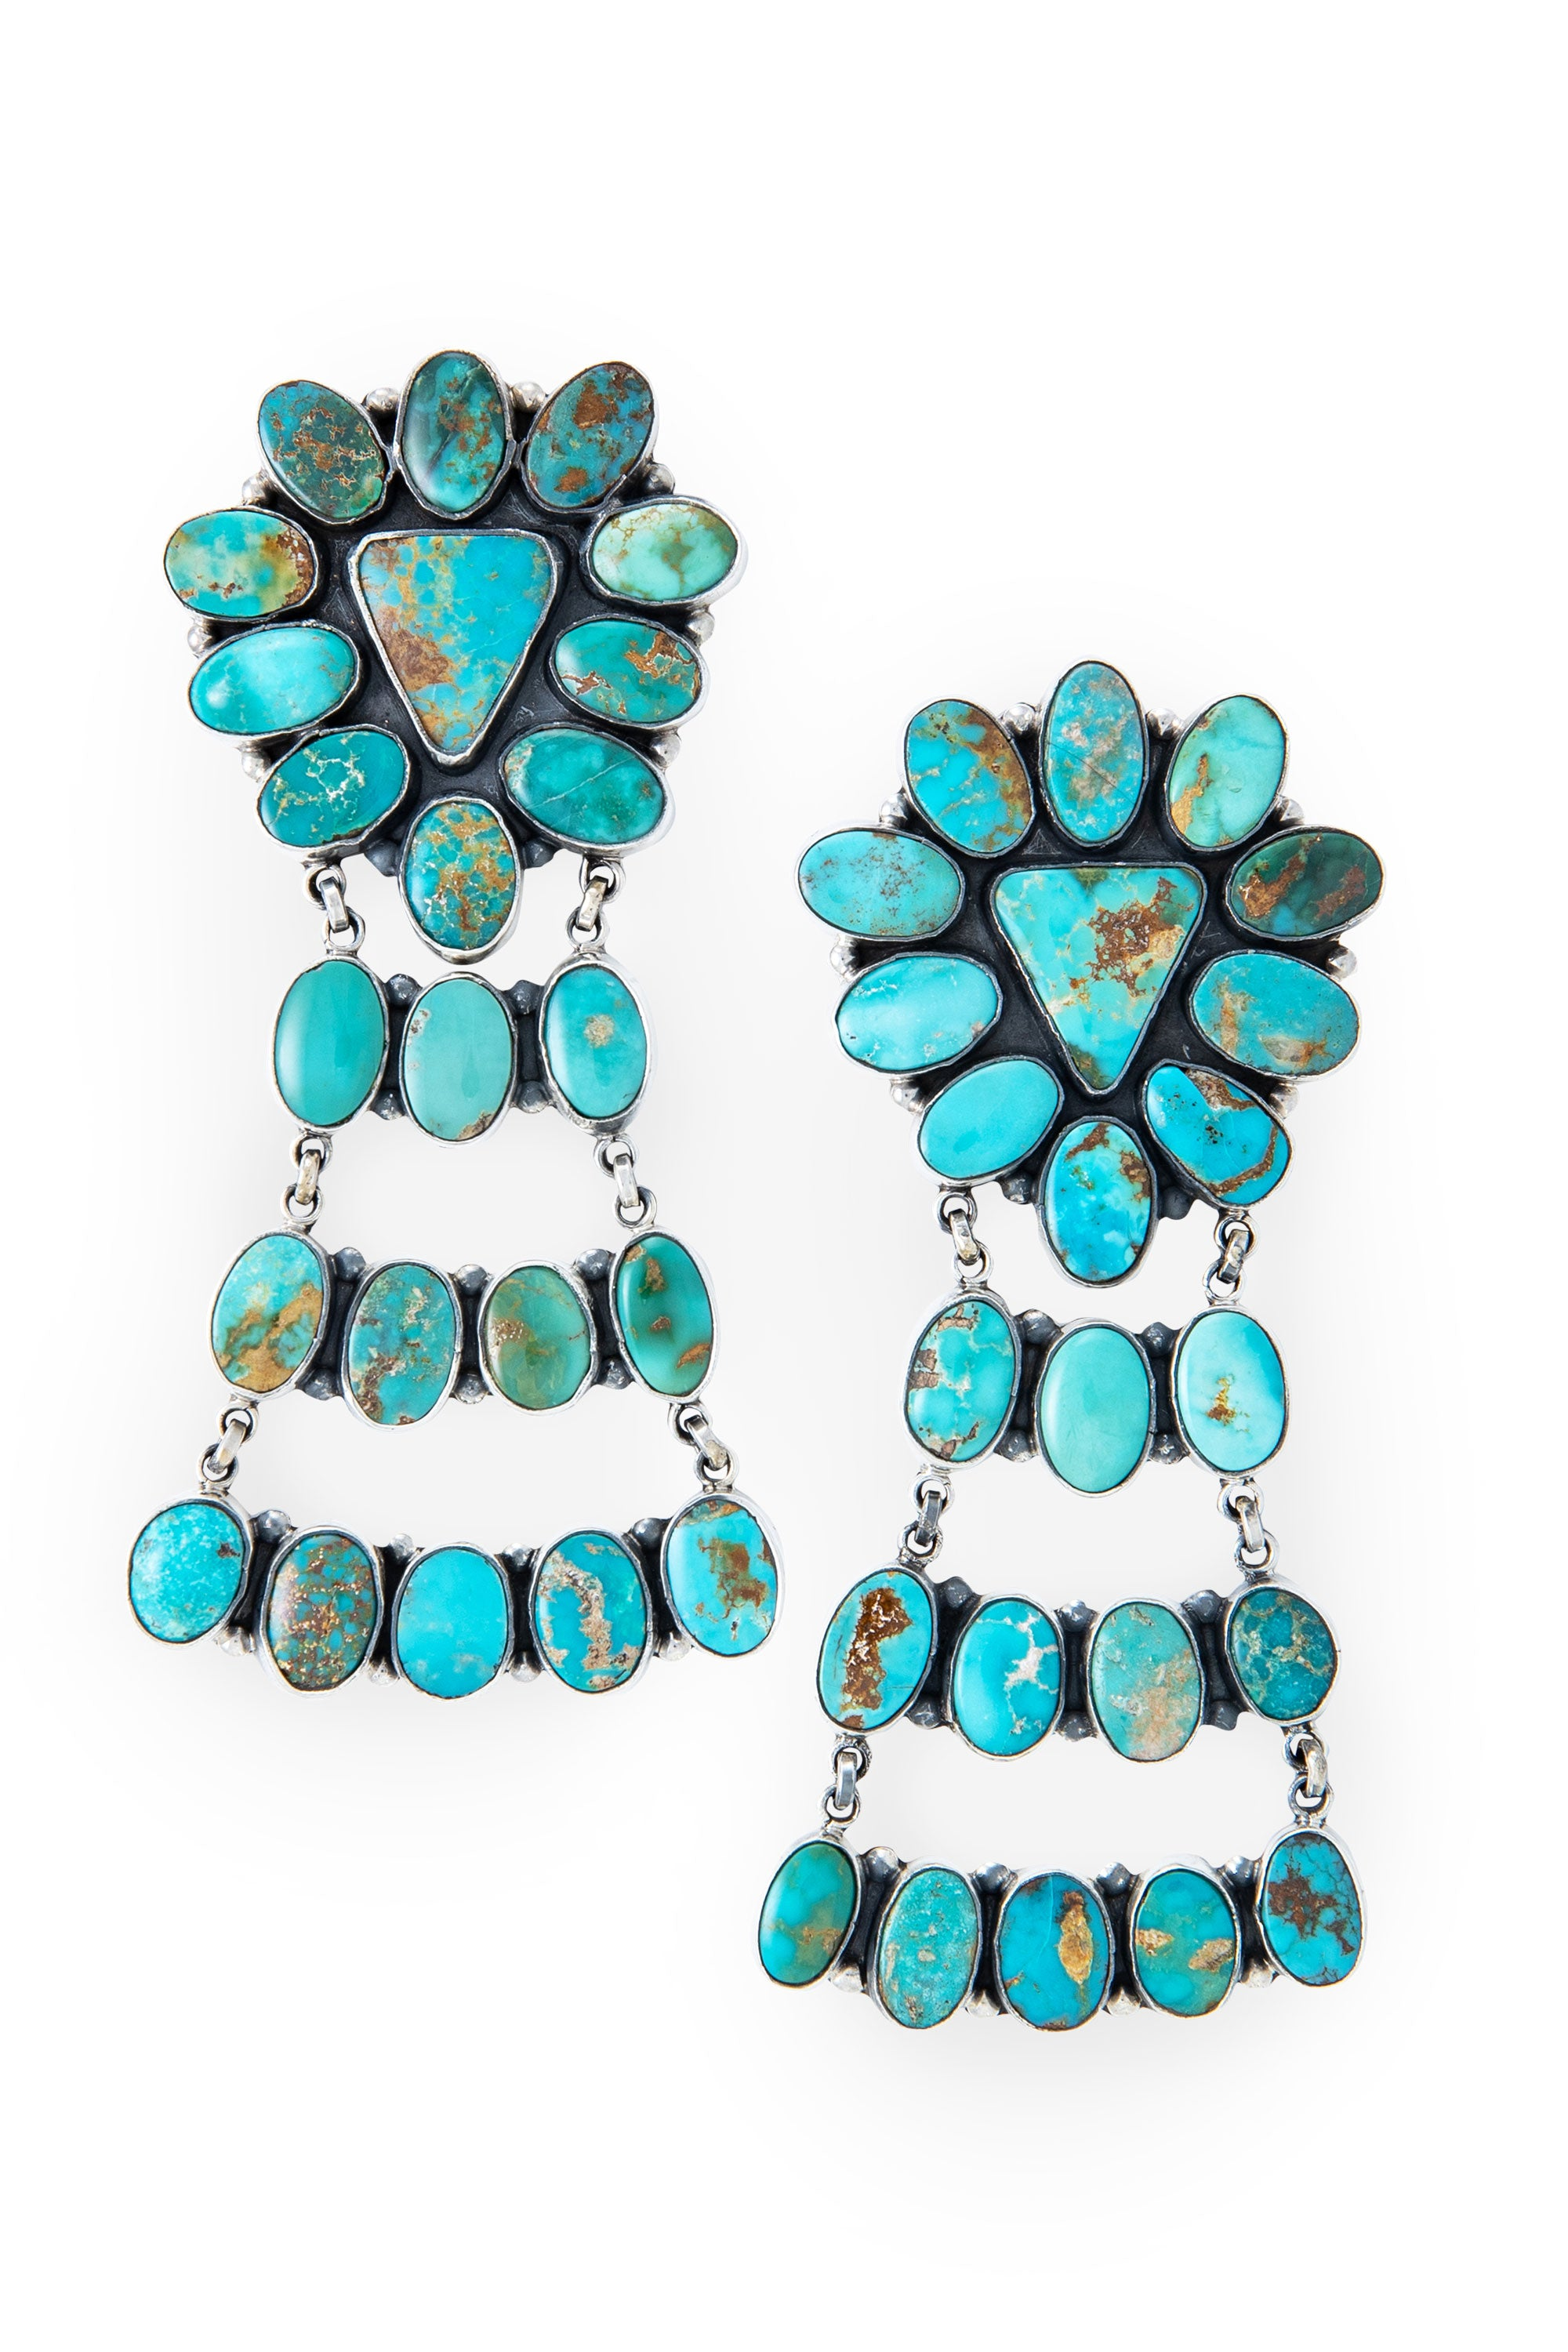 Earrings, Chandelier, Turquoise, Federico, Comtemporary,534